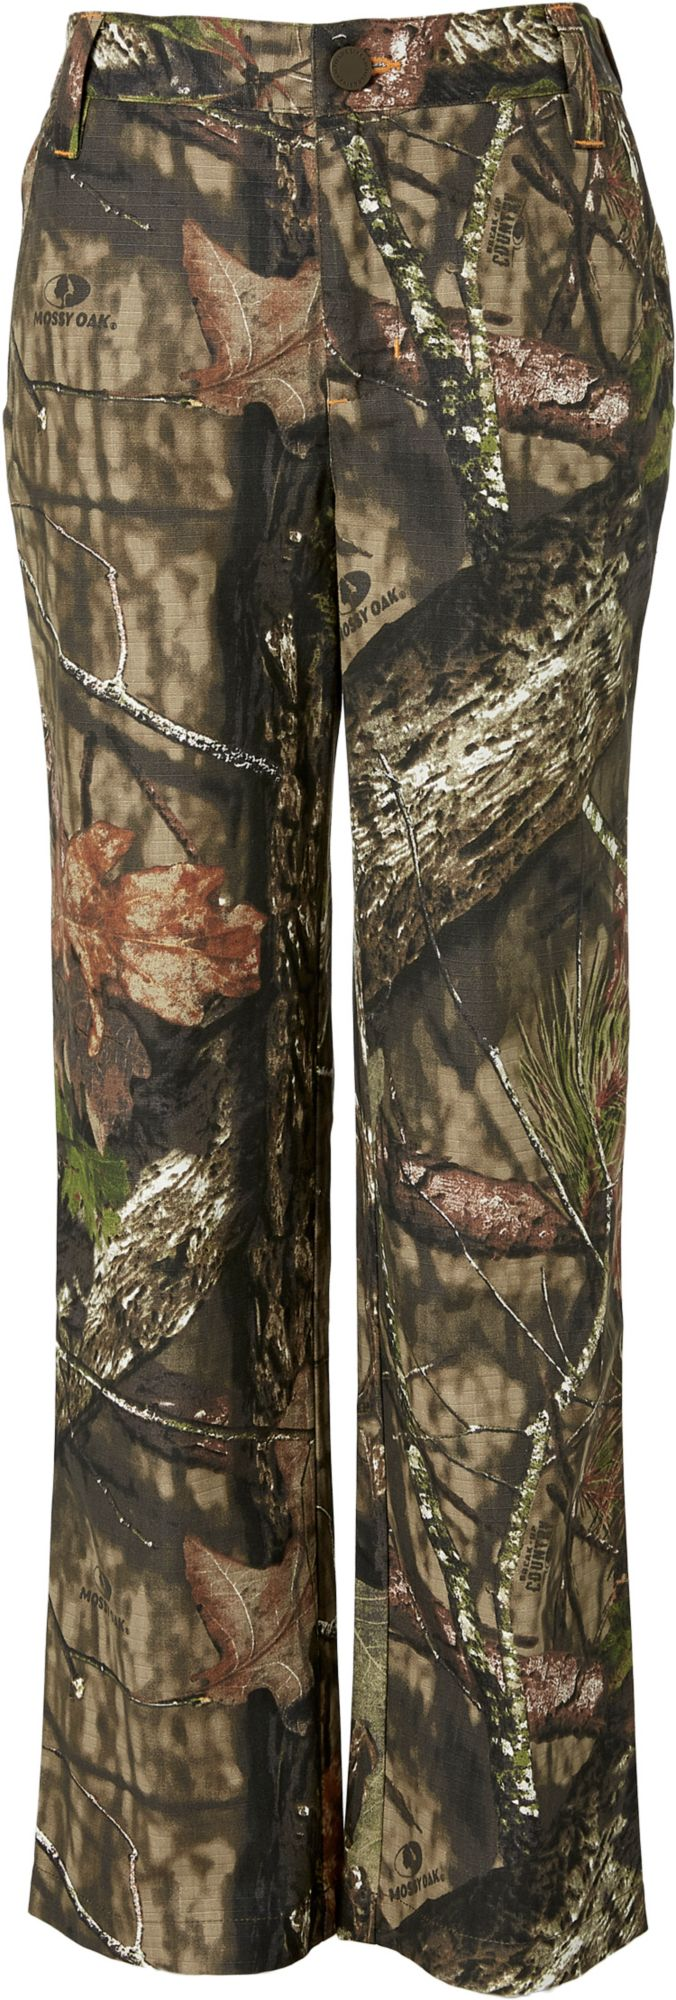 Field & Stream Youth Ripstop Camo Pants, Kids, XL, Mossy Oak Brk-up Country